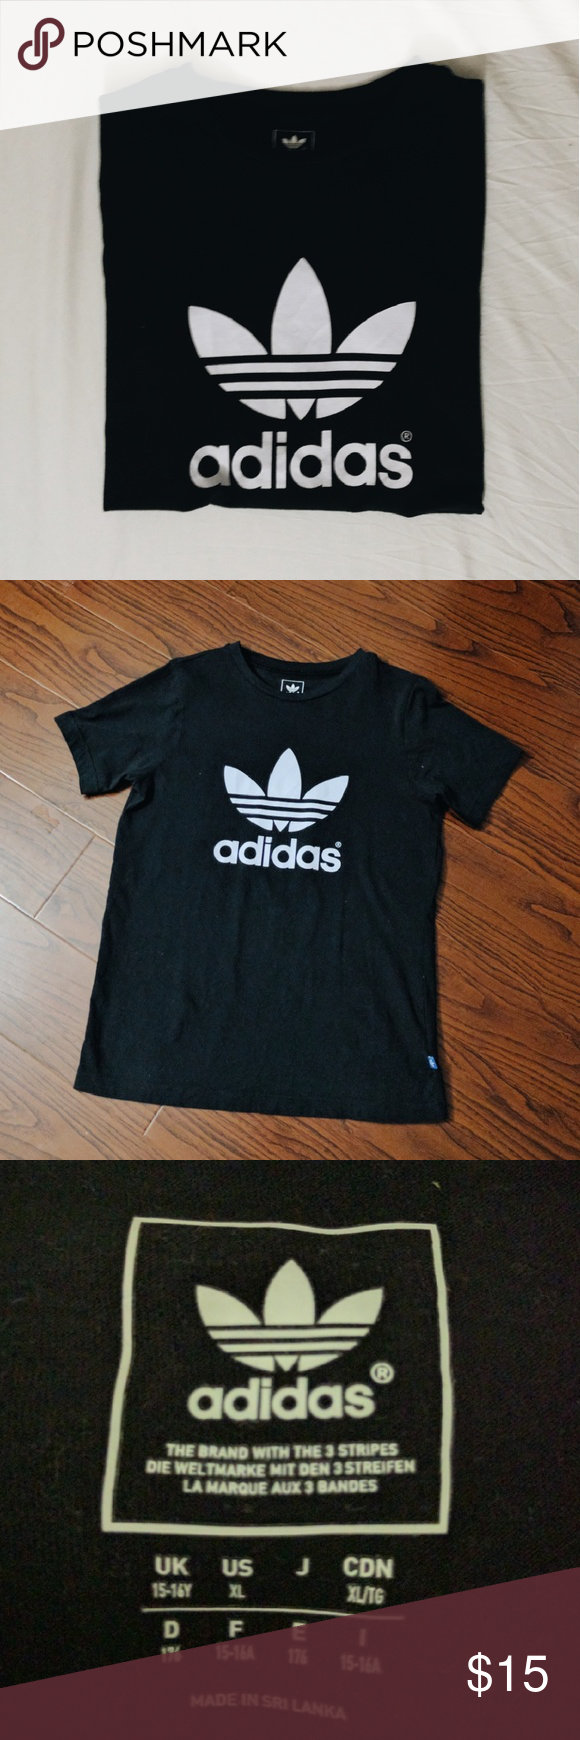 ⚡NEW⚡AUTHENTIC Adidas Logo t-shirt PLEASE READ: IT IS SIZE XL IN CHILDREN'S SIZE, BUT IT FITS LIKE A UNISEX SMALL. Adidas Tops